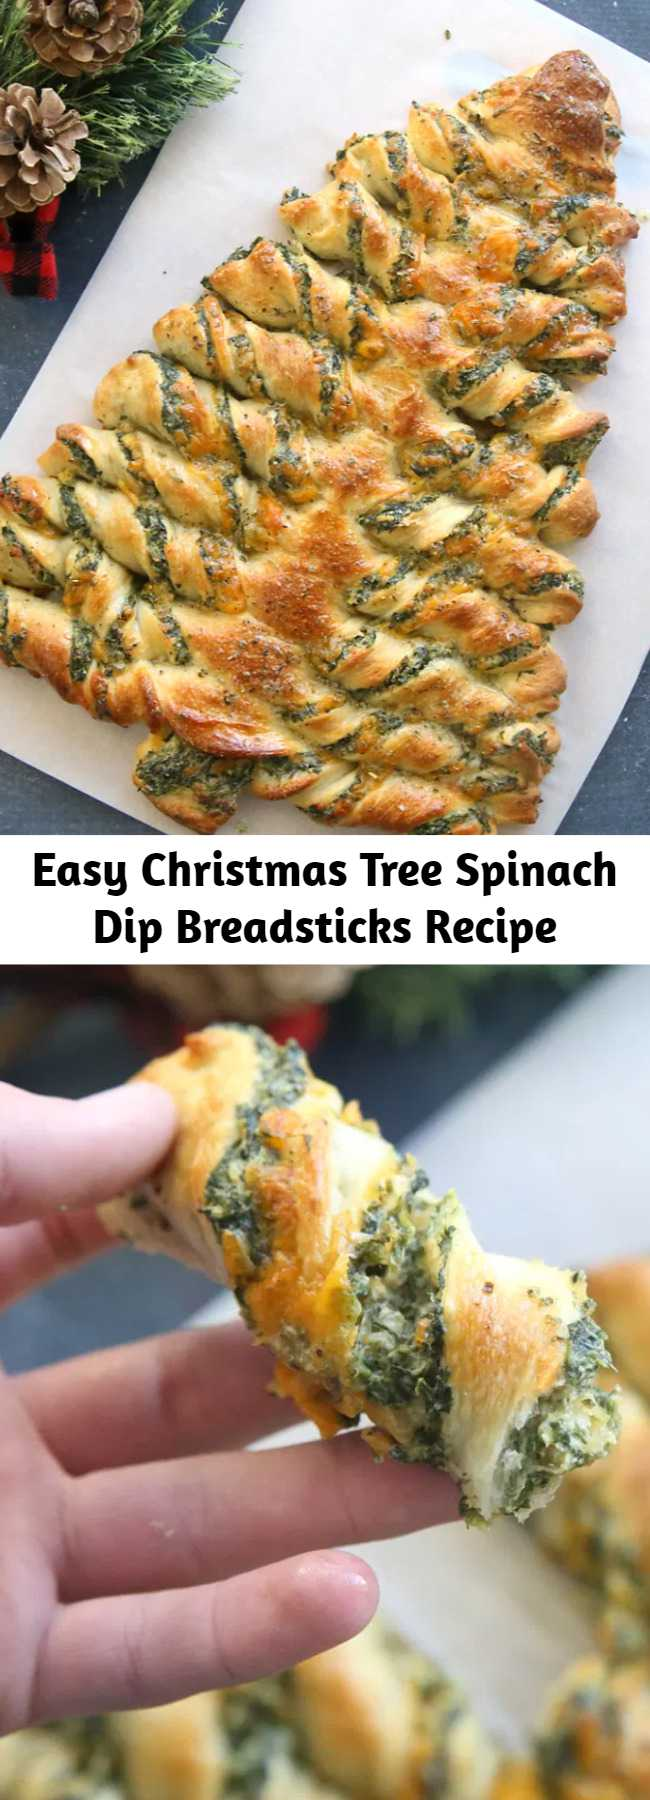 Easy Christmas Tree Spinach Dip Breadsticks Recipe - These Christmas tree breadsticks are the perfect party appetizer for the holidays! They're filled with spinach dip and topped with garlic butter. It looks so pretty and tastes absolutely delicious.